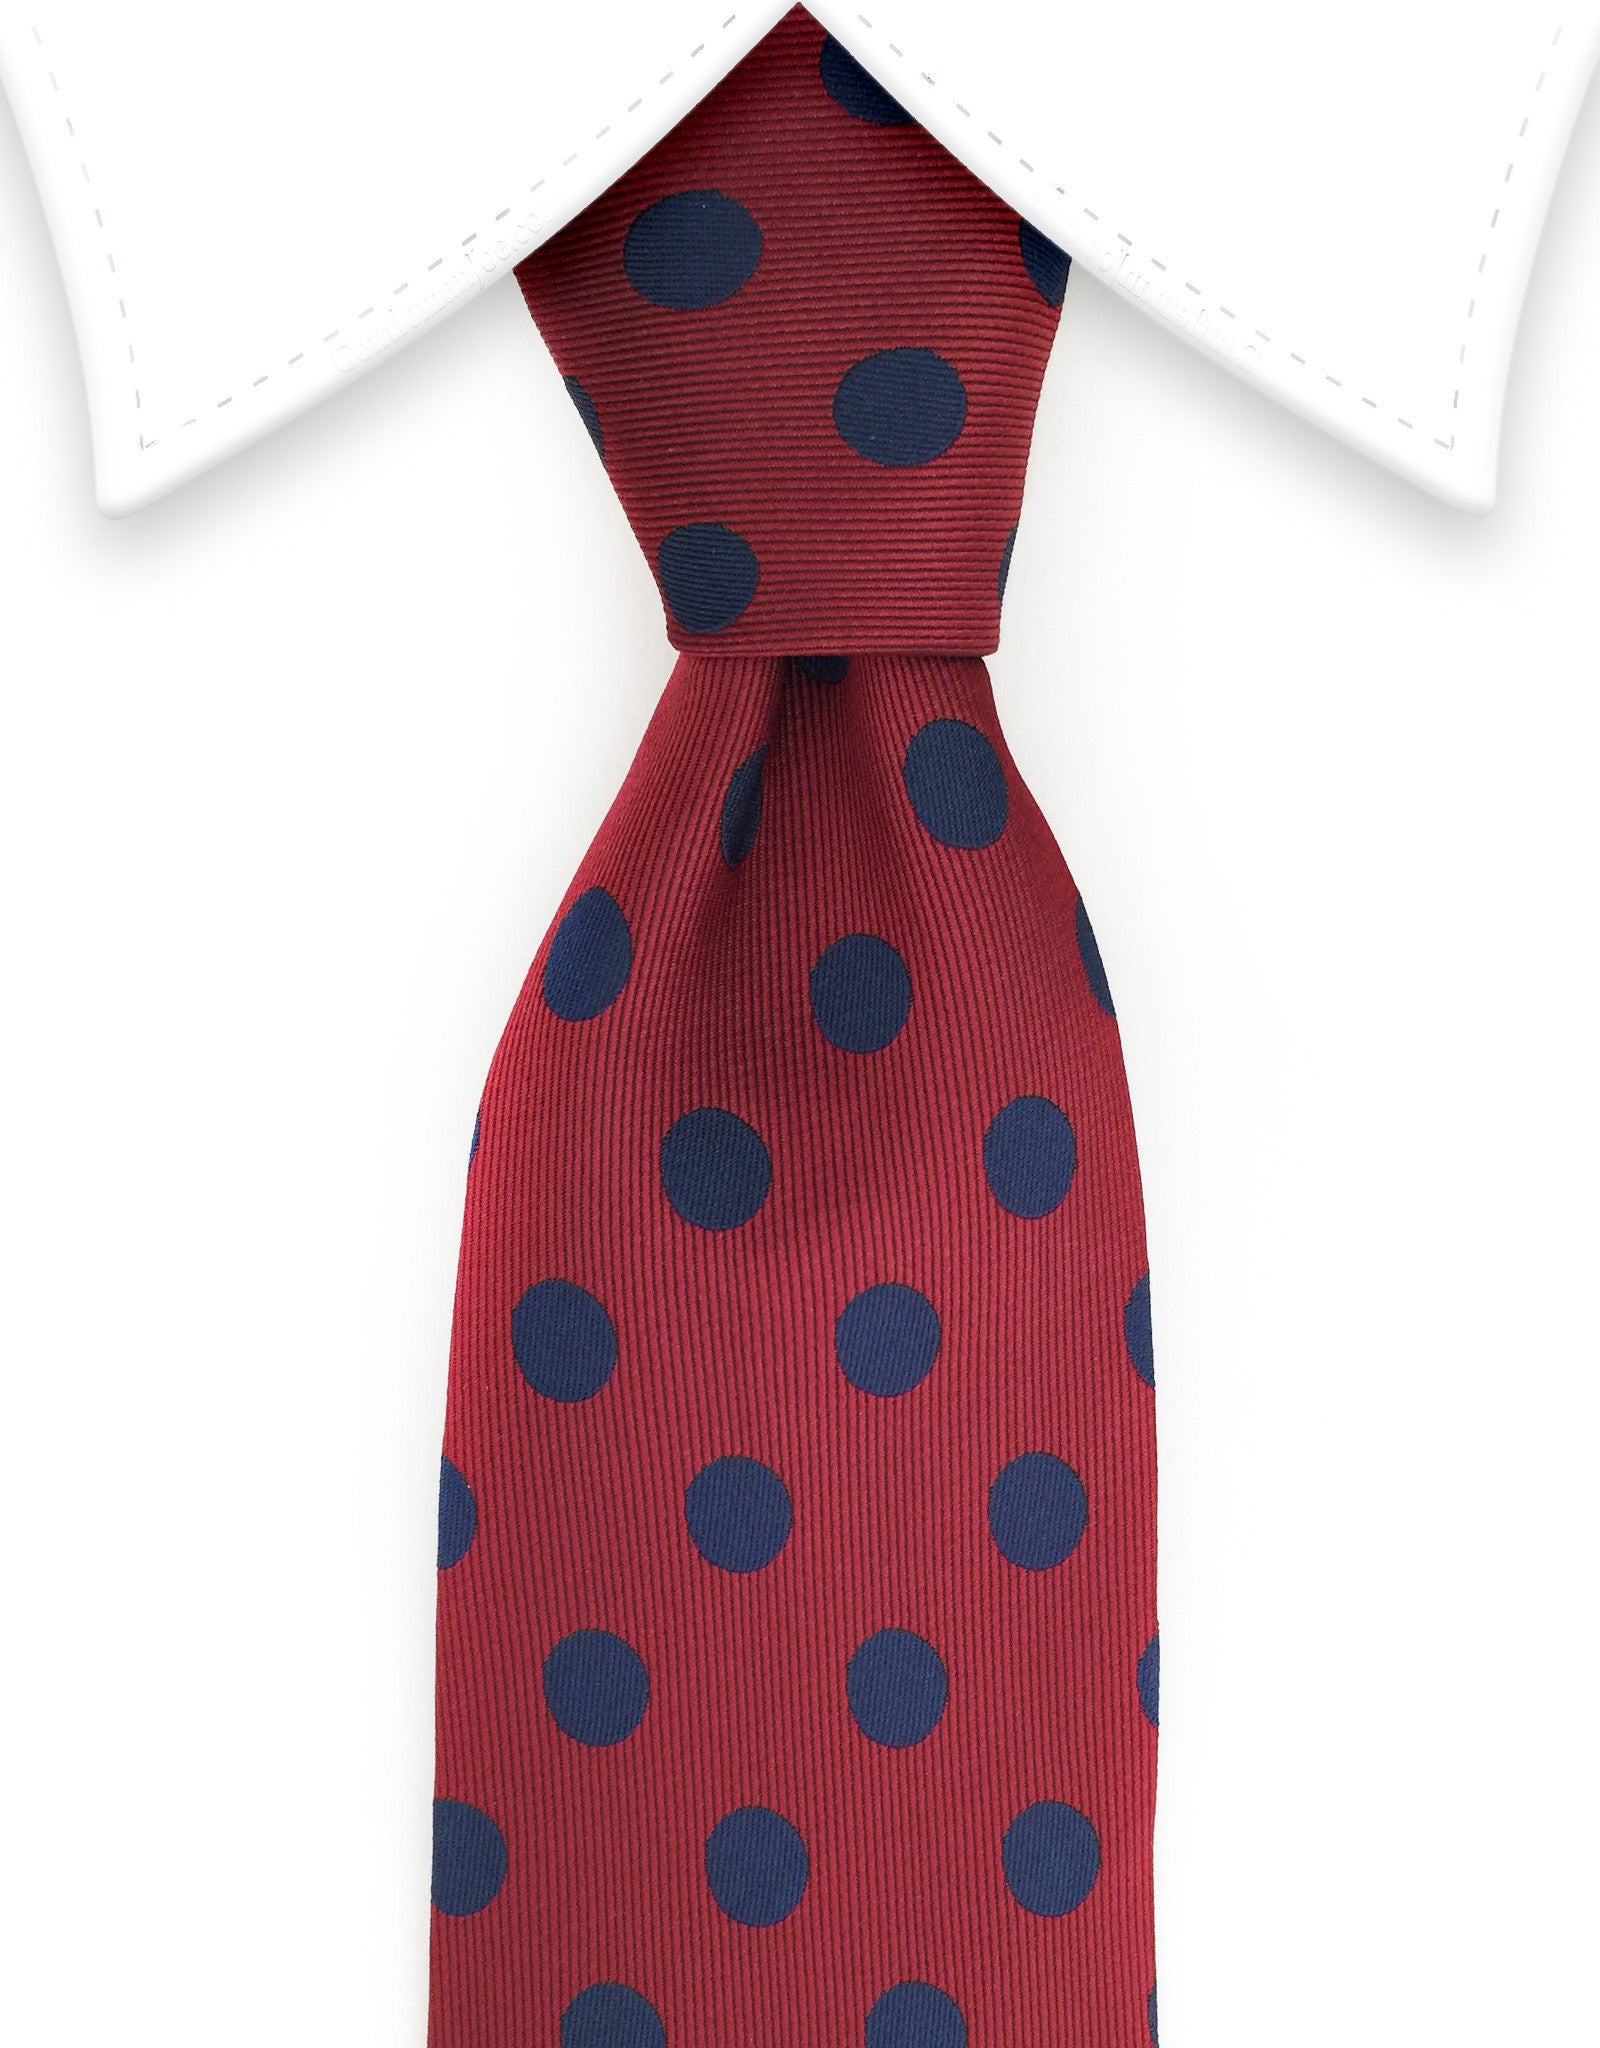 burgundy slim tie with navy blue polka dots